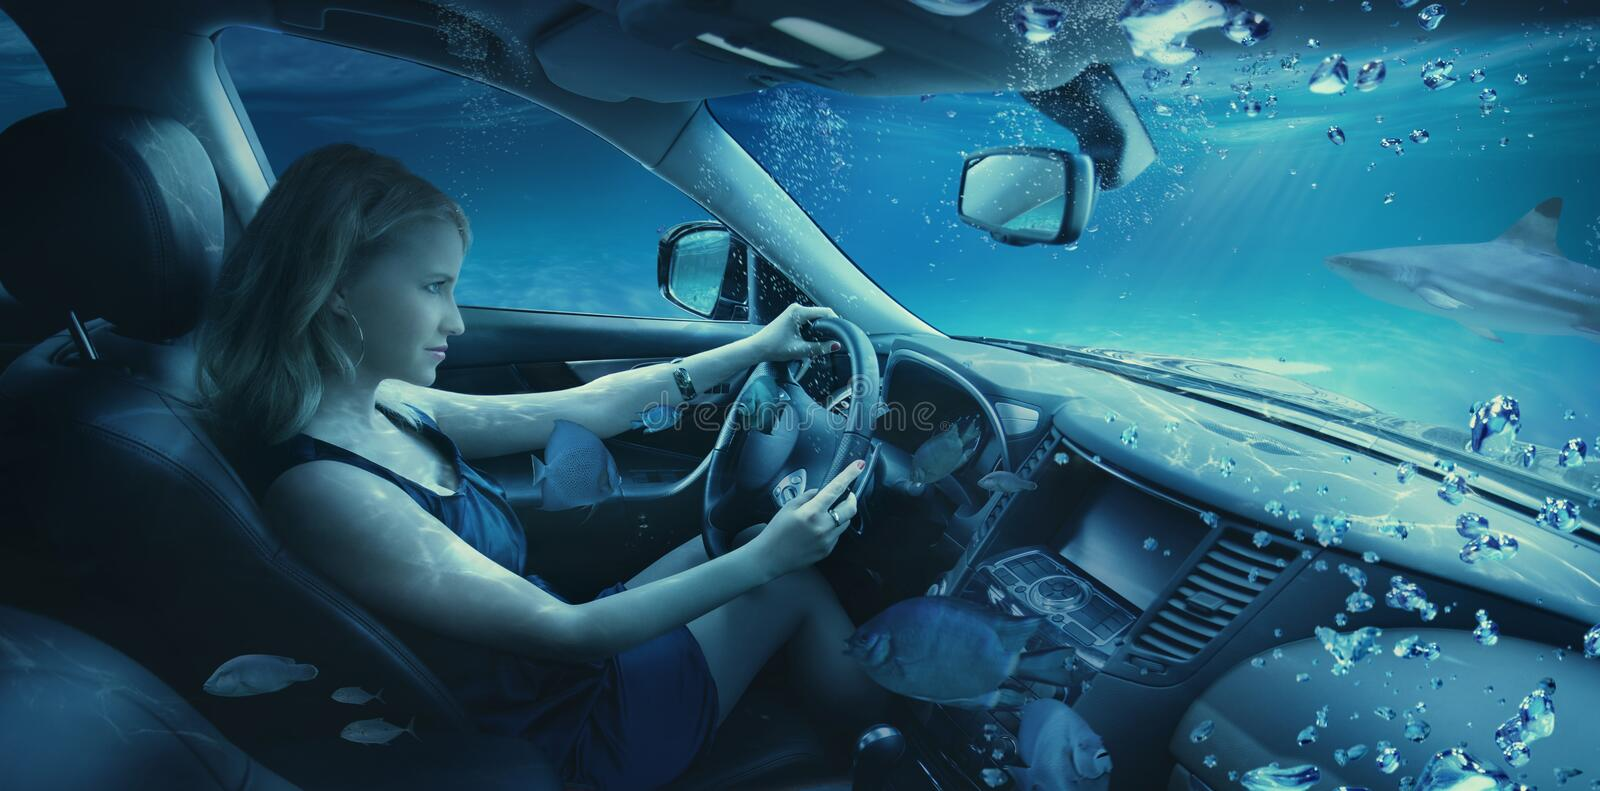 Girl underwater in the car stock photography